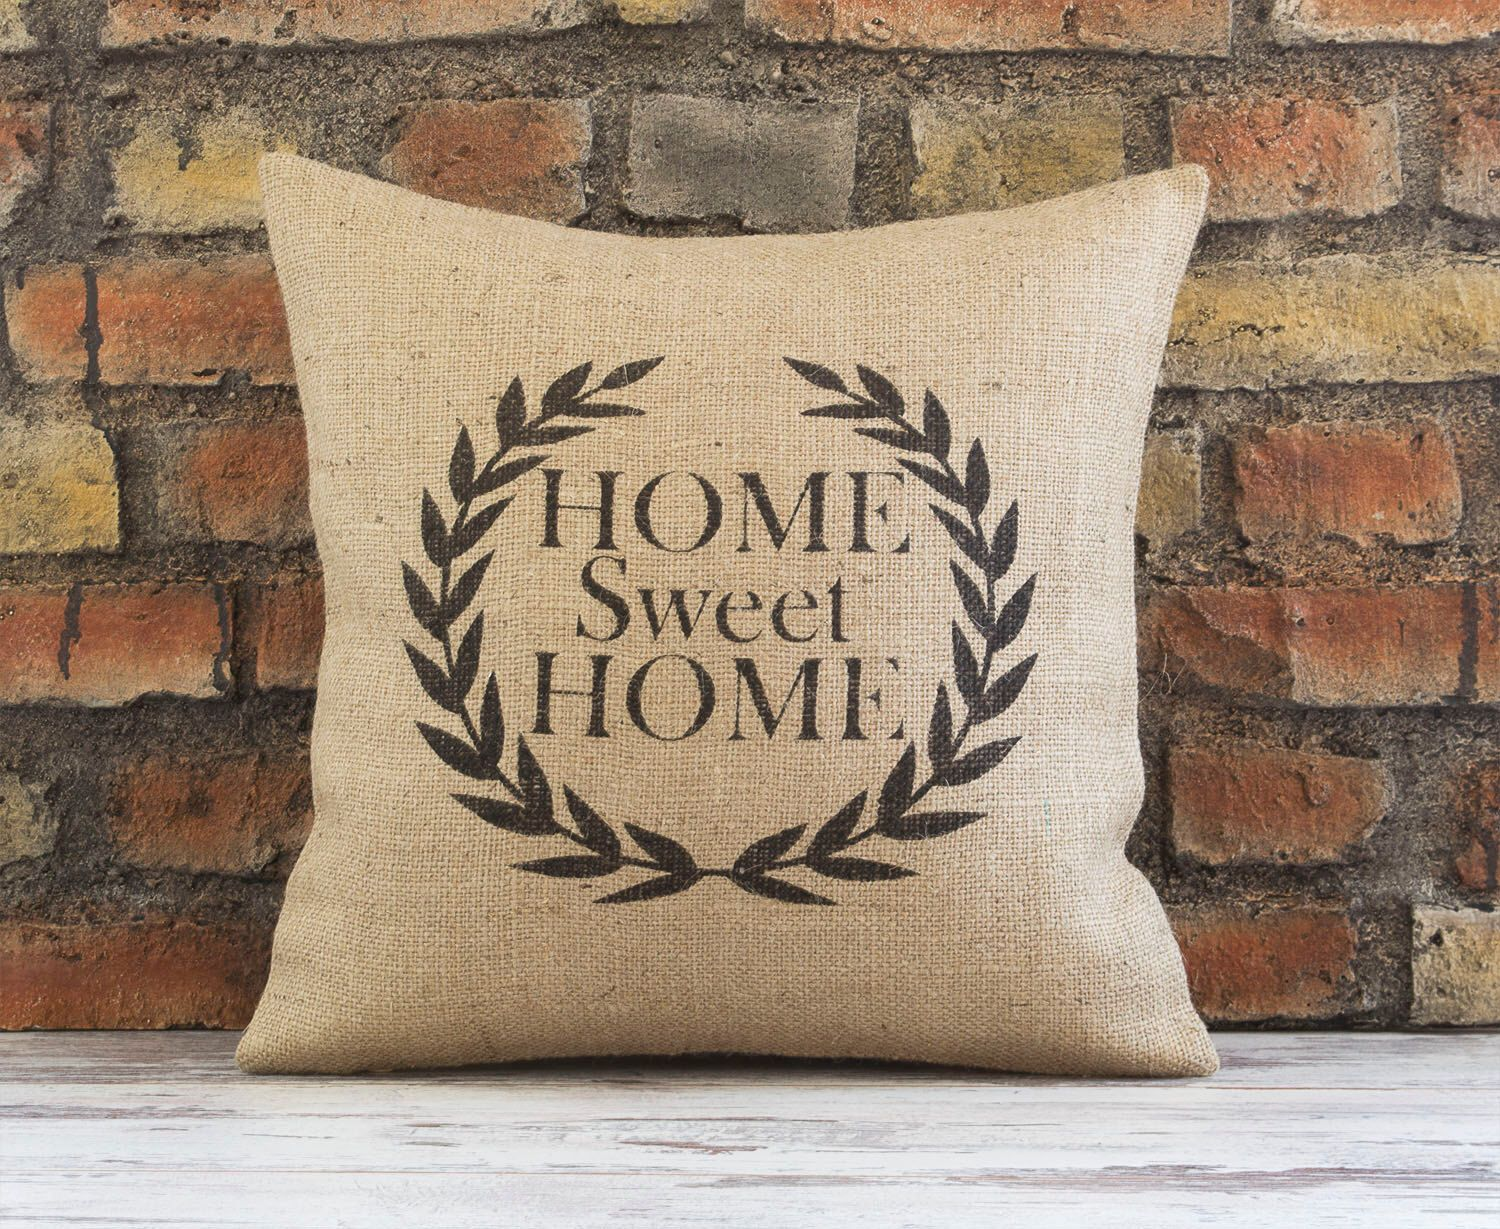 Home Sweet Home, Pillow, Home Decor, Decorative Pillow, Housewarming Gift,  Burlap Pillowcase, Home Pillow, Throw Pillow, Home, Rustic Pillow